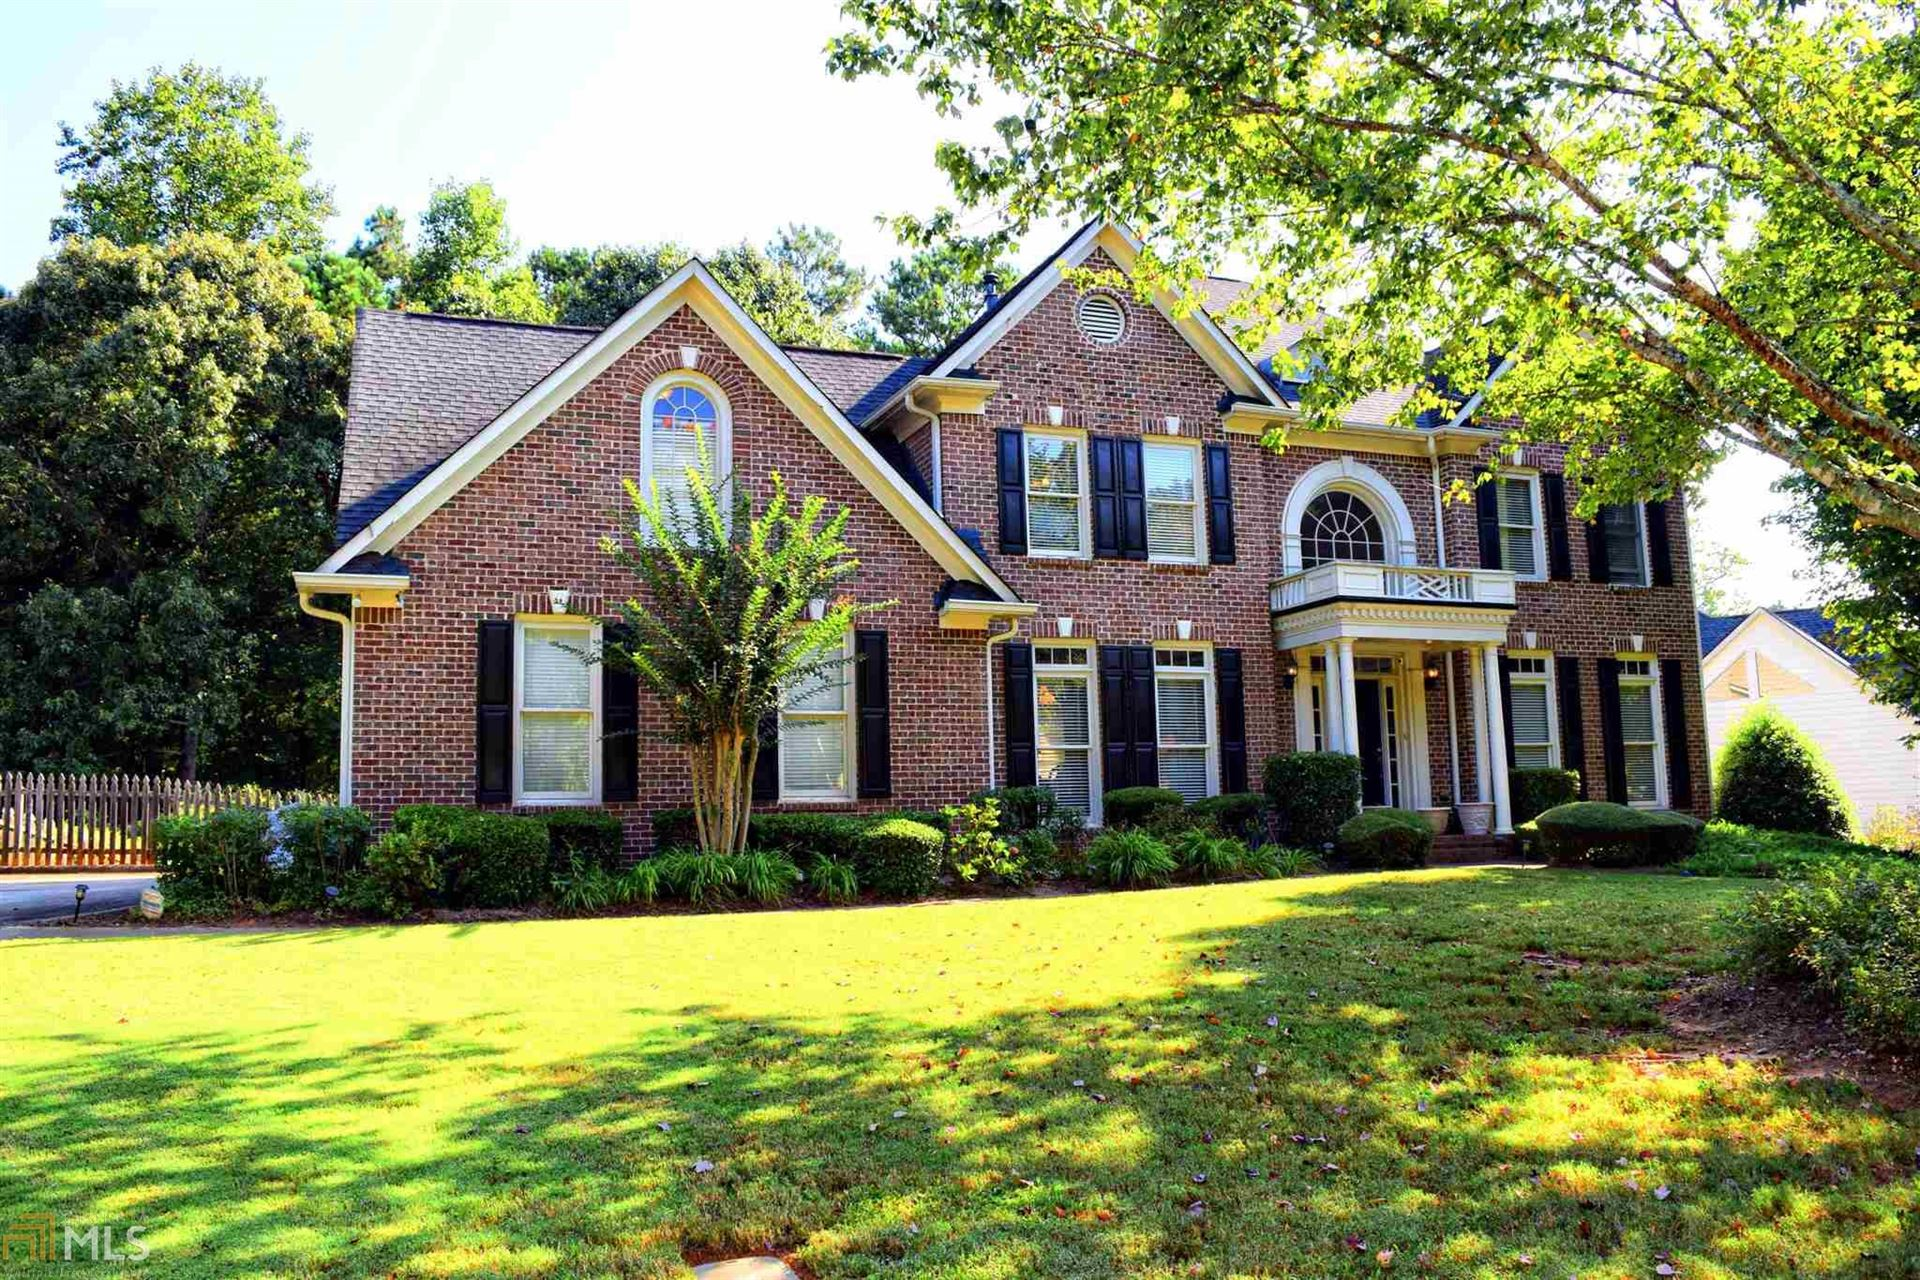 715 Woodbrook Way, Lawrenceville, GA 30043 - MLS#: 8872032